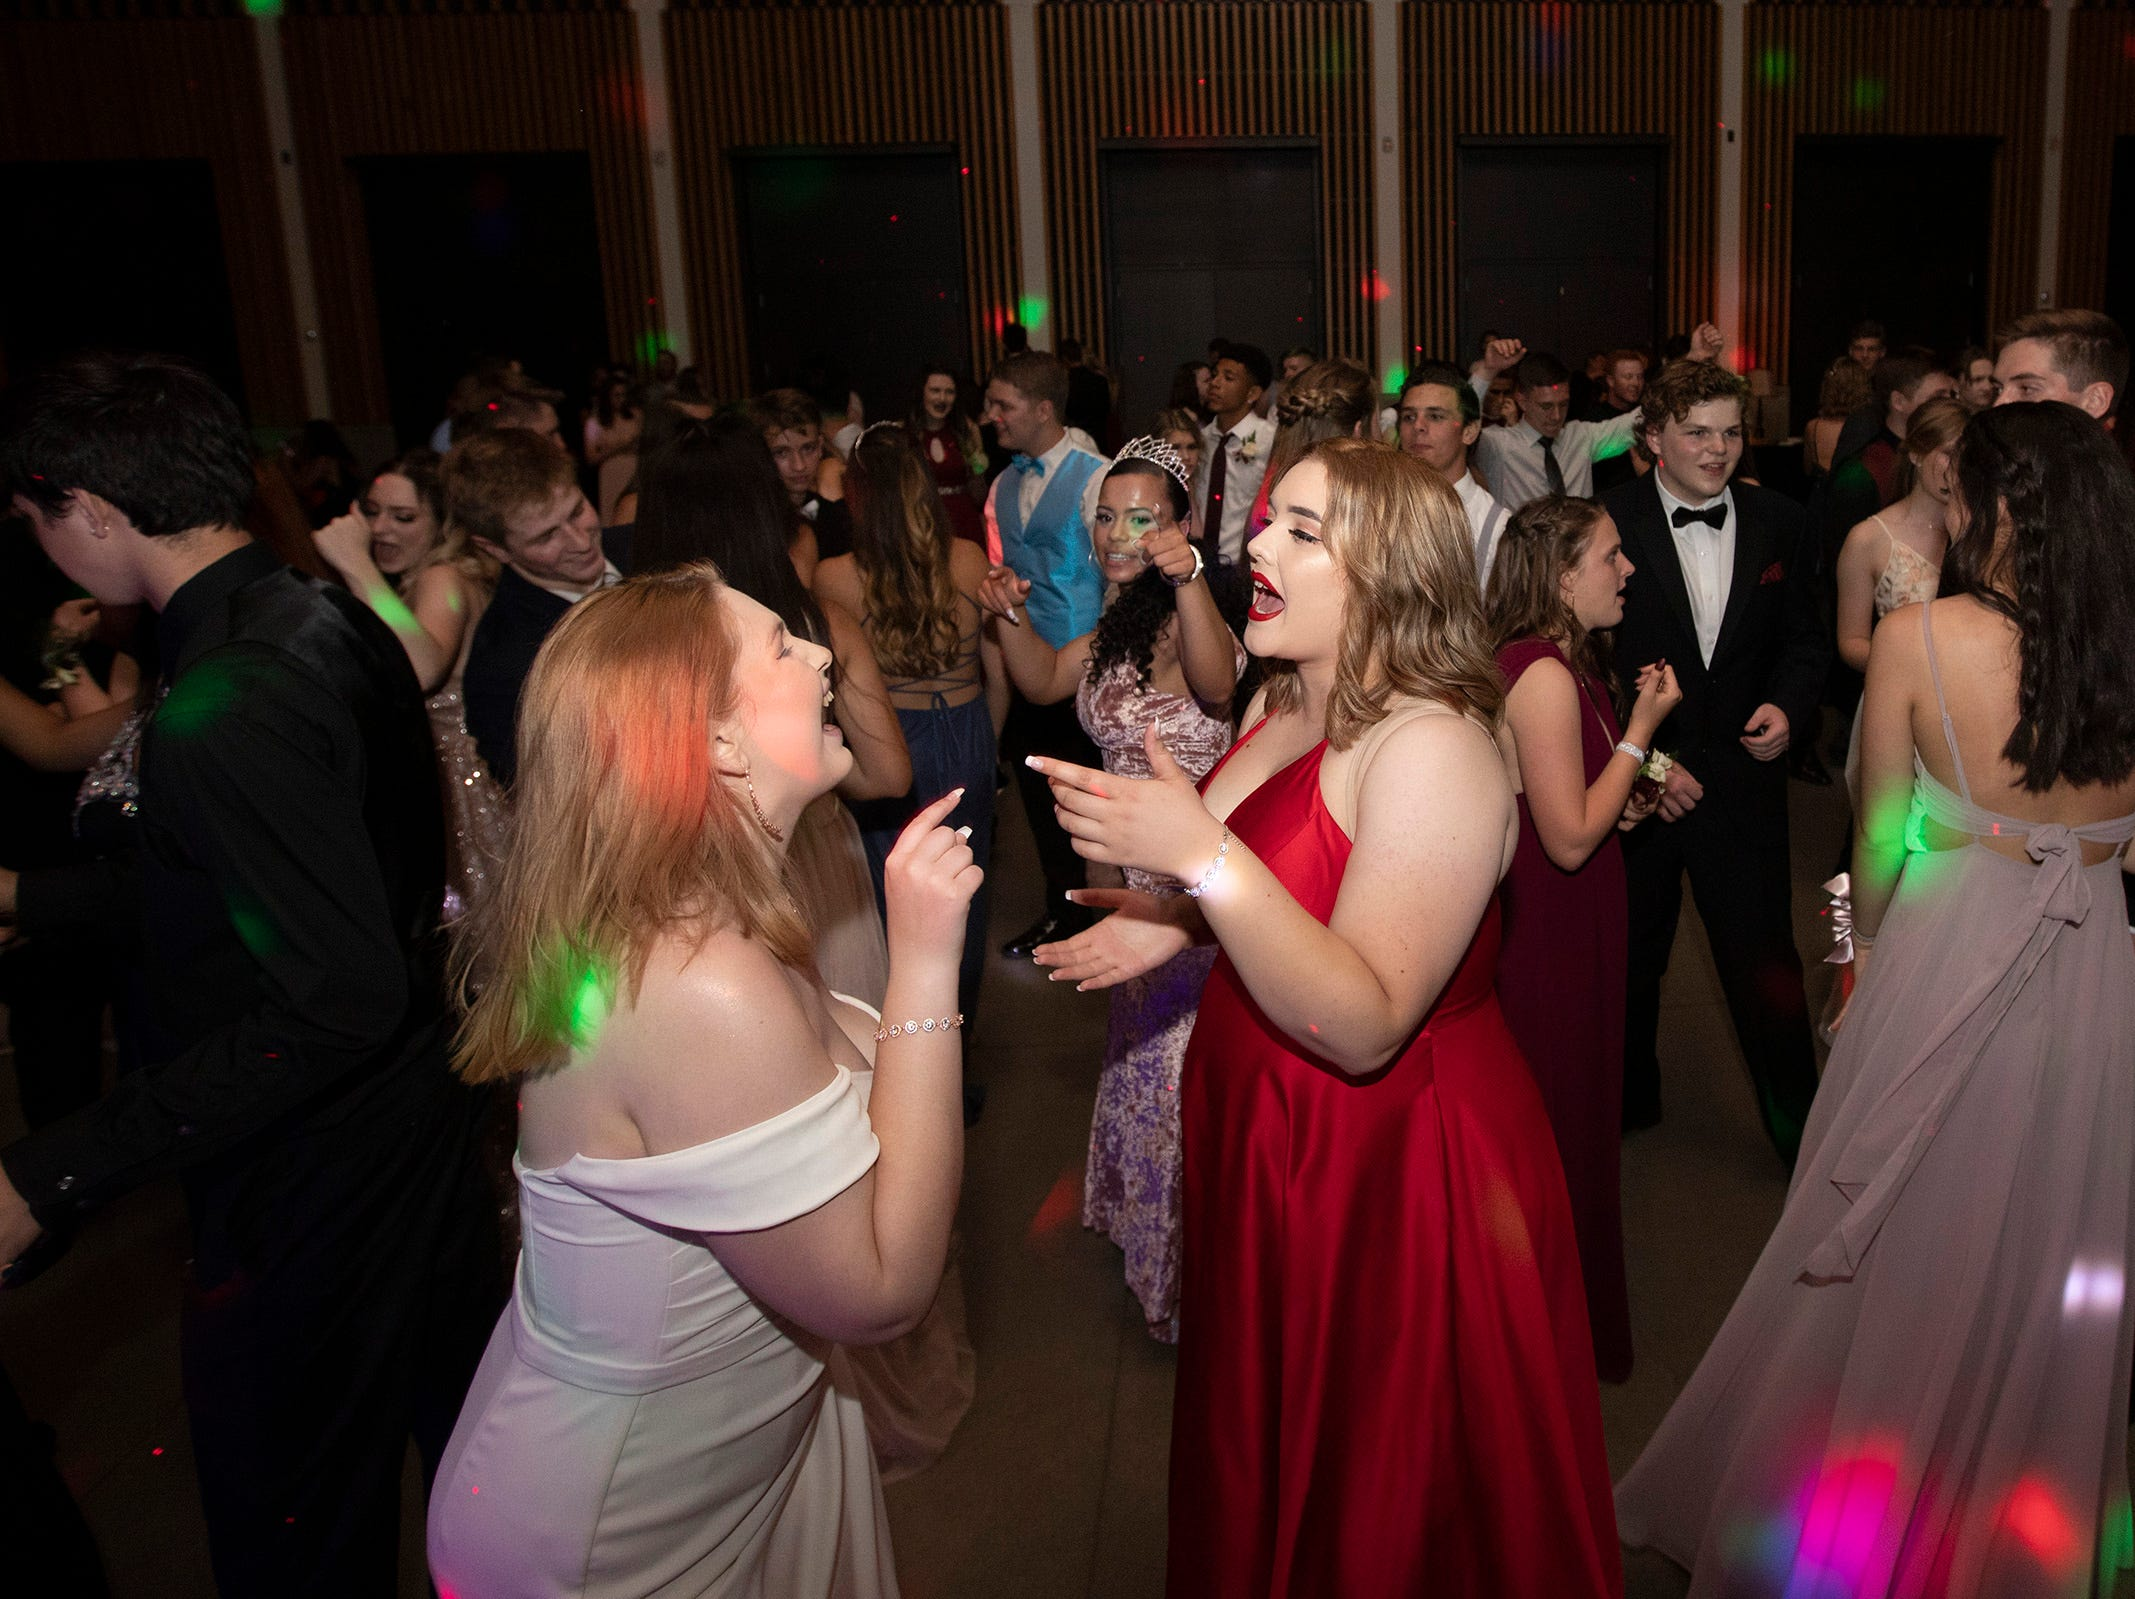 Taylor Snoha, left, and Samantha Urrutia sing along while dancing during the Dallas High School prom at the Dallas Armory on Saturday, May 12.